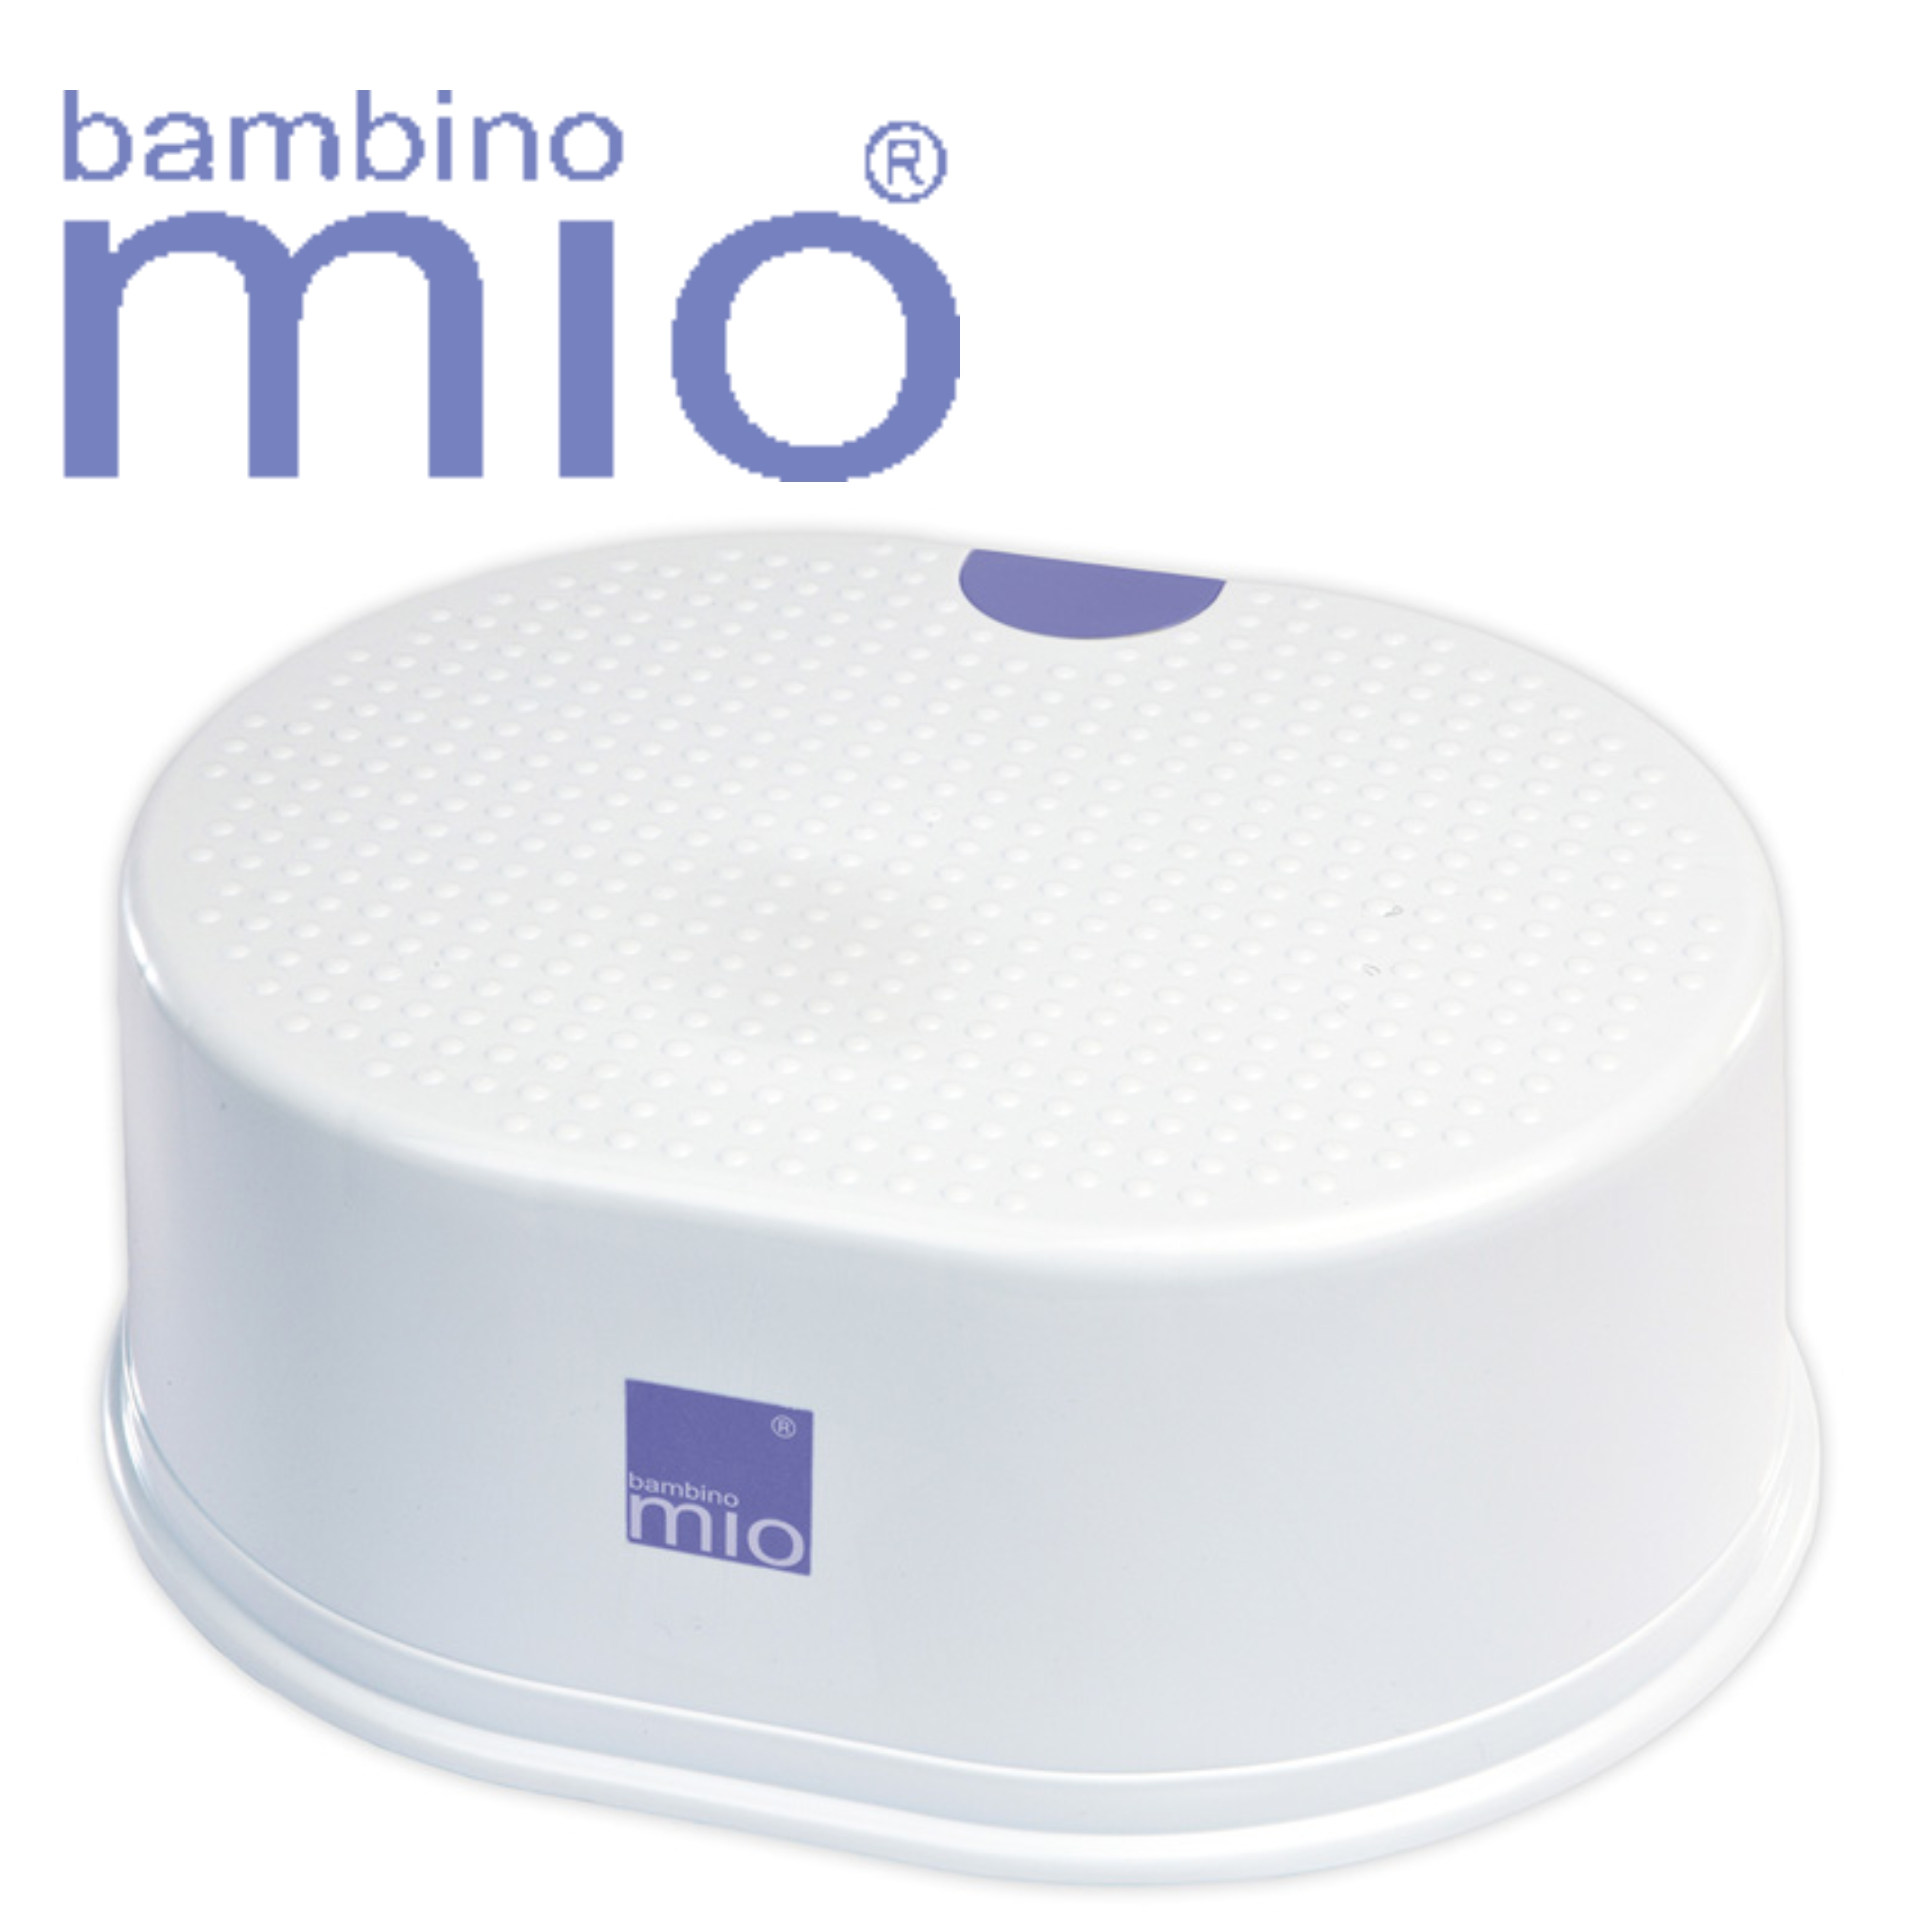 Bambino Mio Miostep Stool|Baby/Kid's Use for Inddor/Outdoor|Lightweight|BPA Free